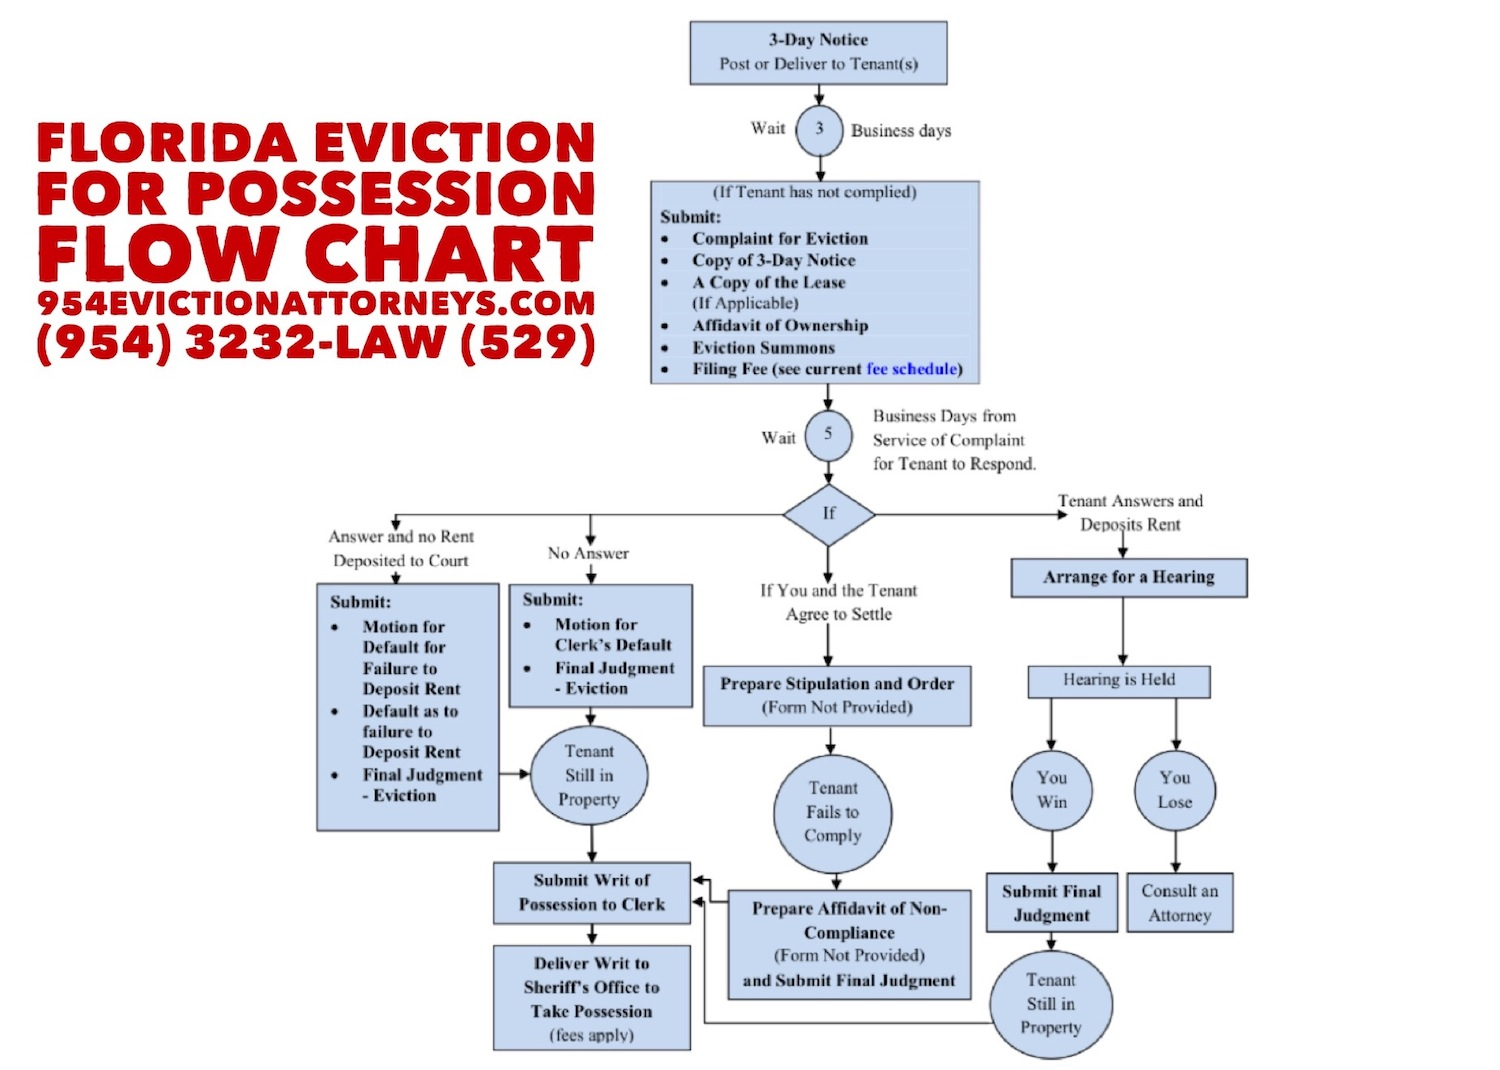 Eviction process flow chart florida flow chart for eviction process nvjuhfo Image collections